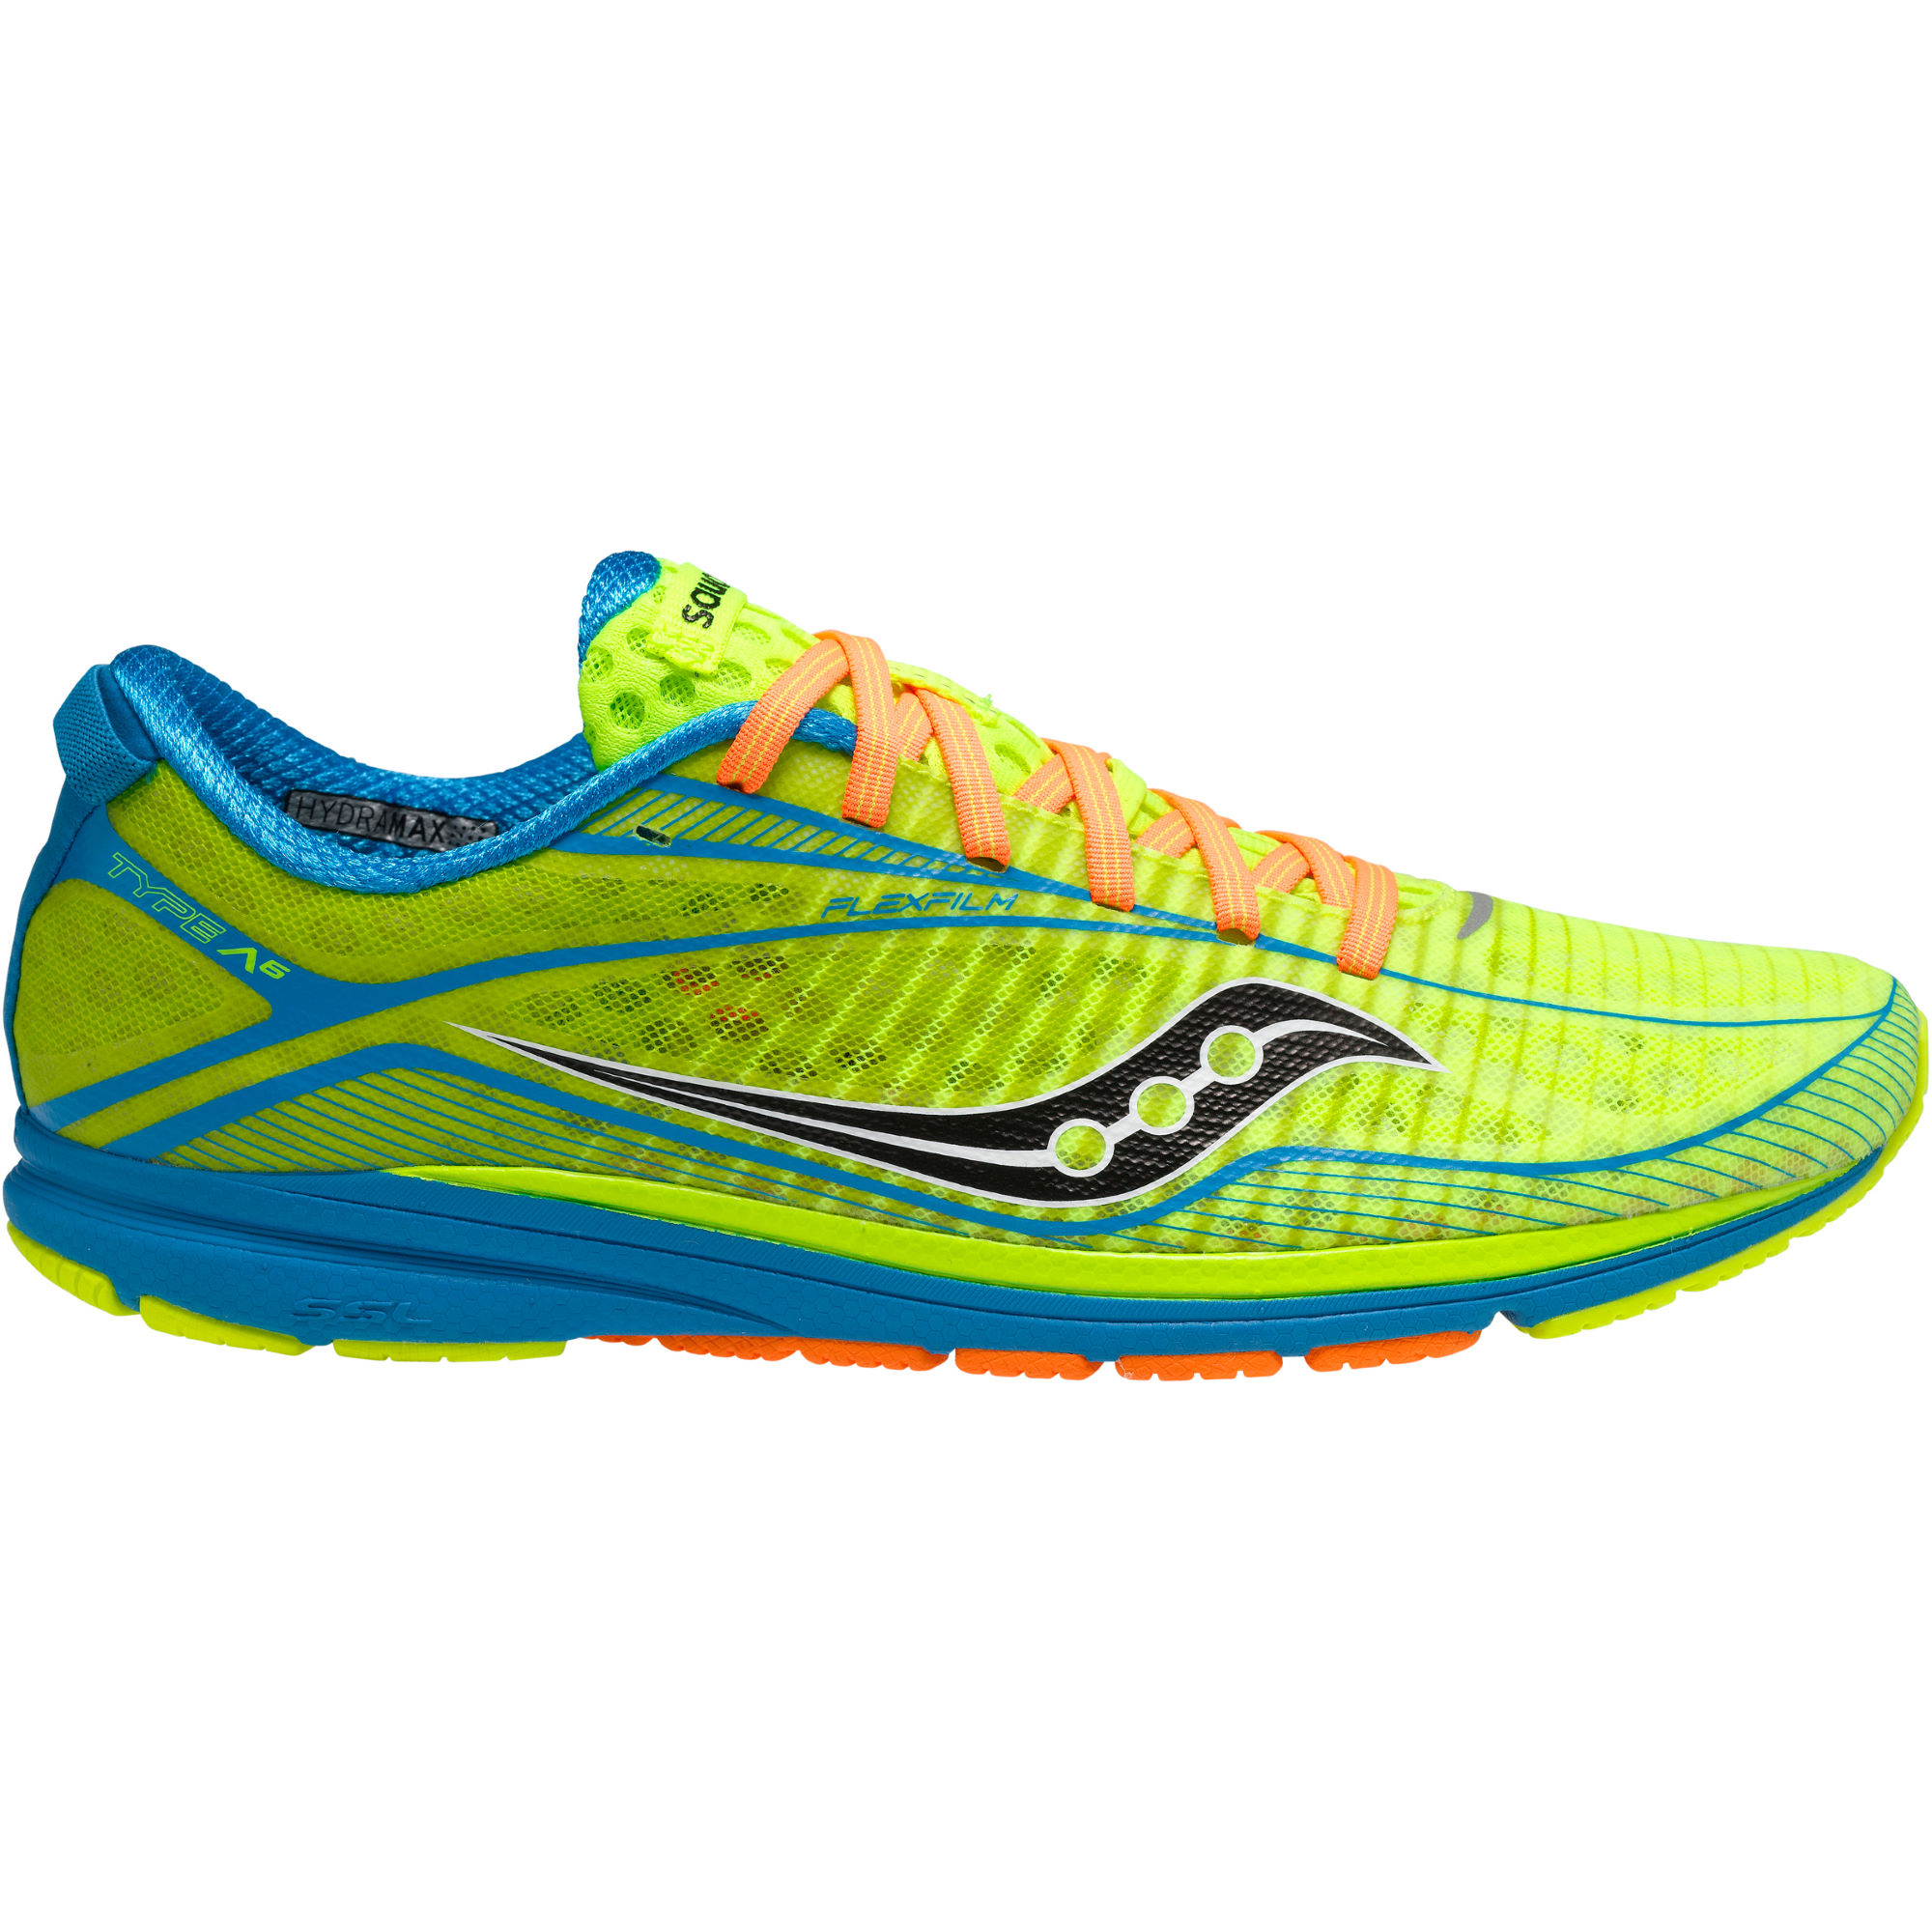 Orca Running Shoes